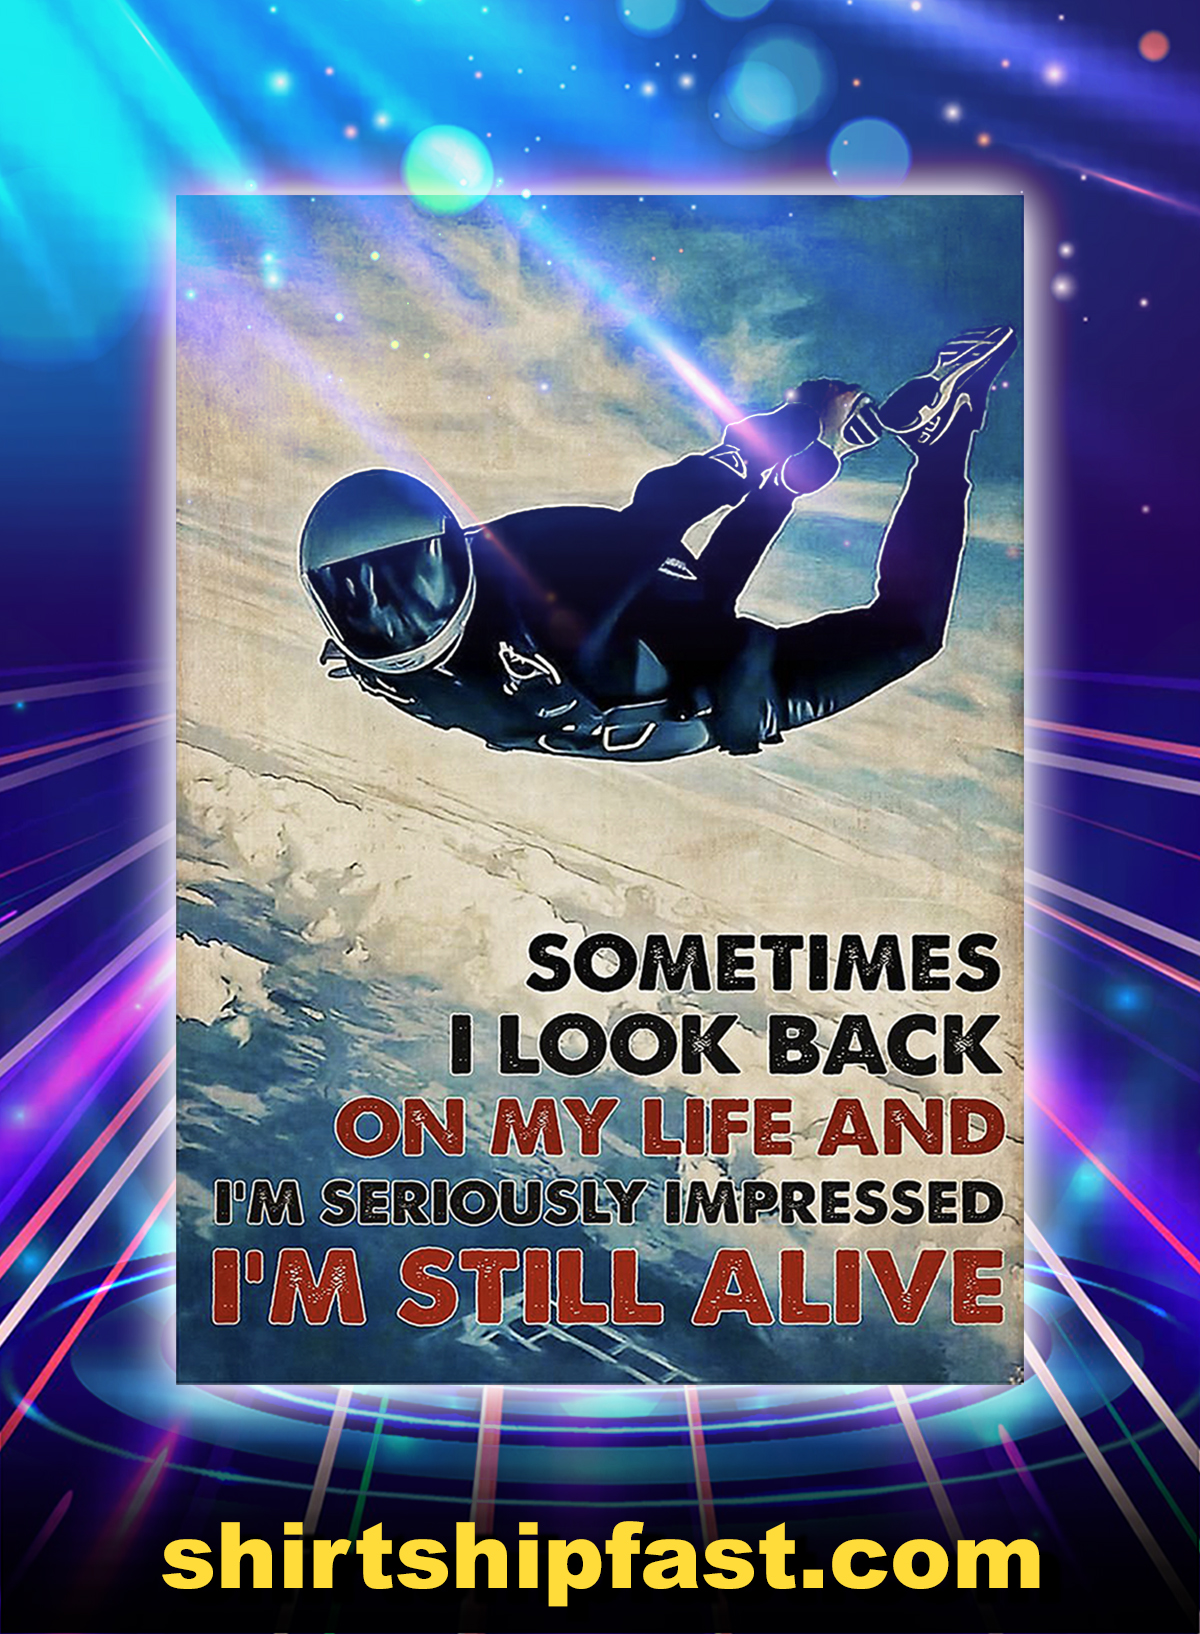 Skydiver sometimes i look back on my life poster - A1